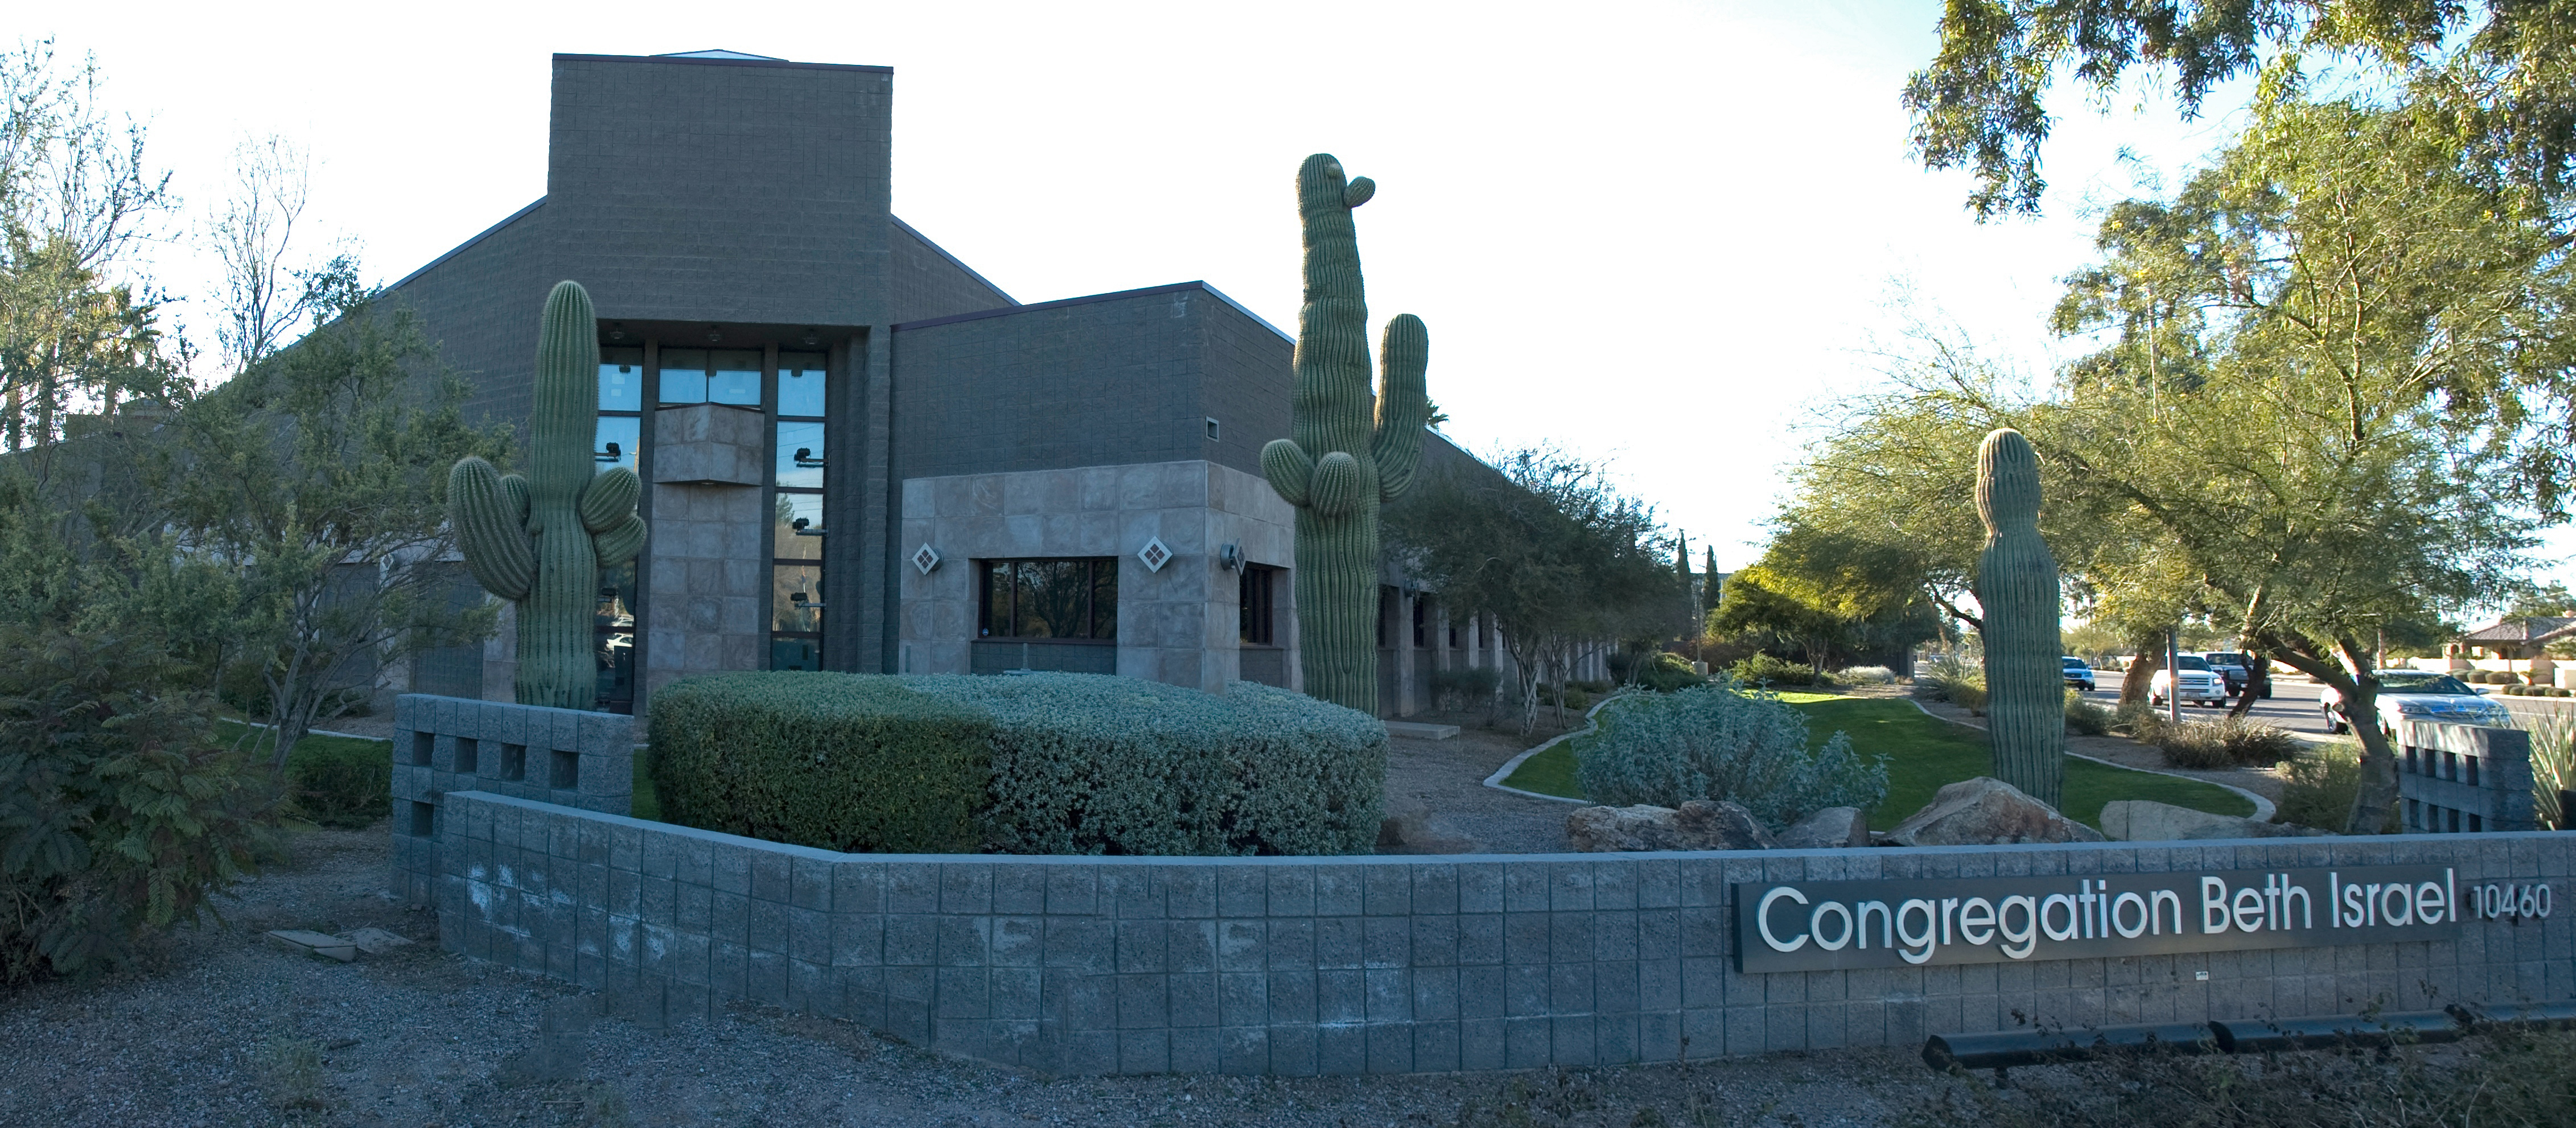 Congregation Beth Israel (Scottsdale, Arizona) - Wikipedia